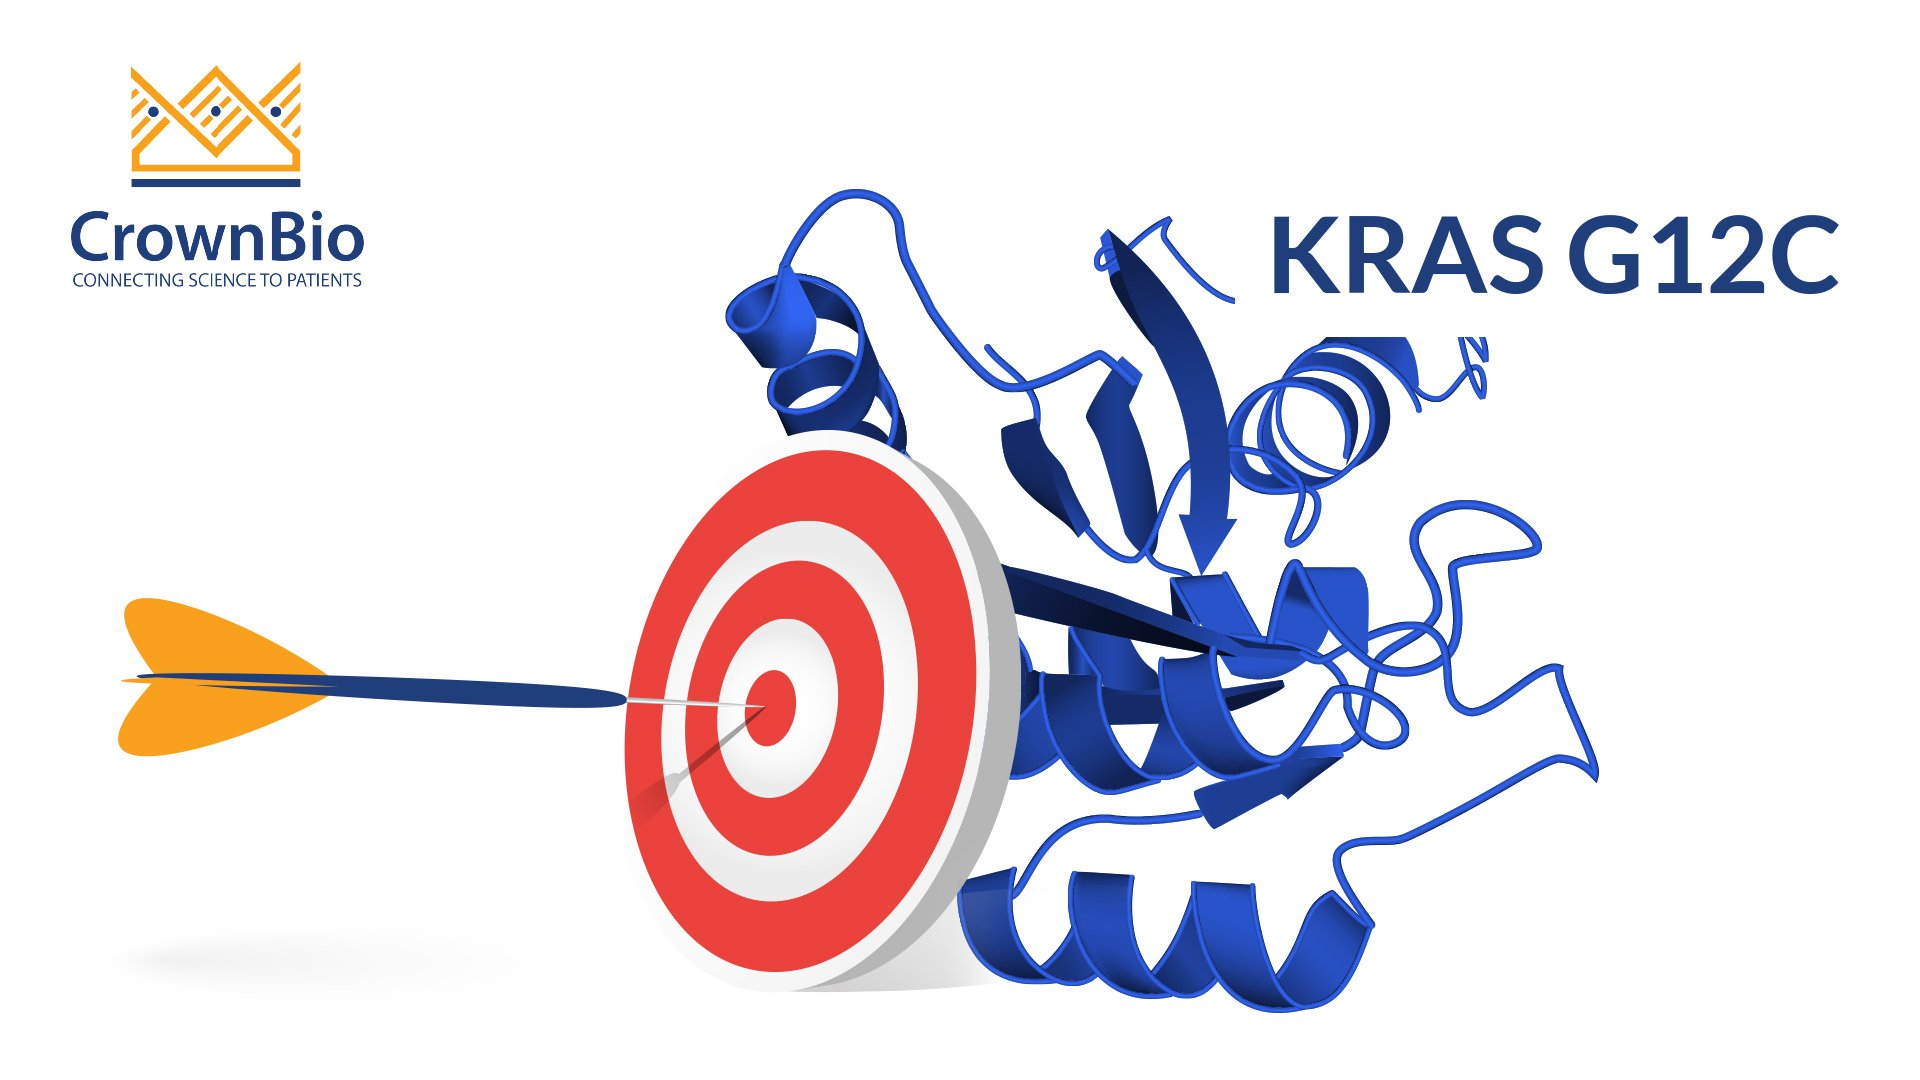 Targeting KRAS: Finally Drugging the Undruggable?